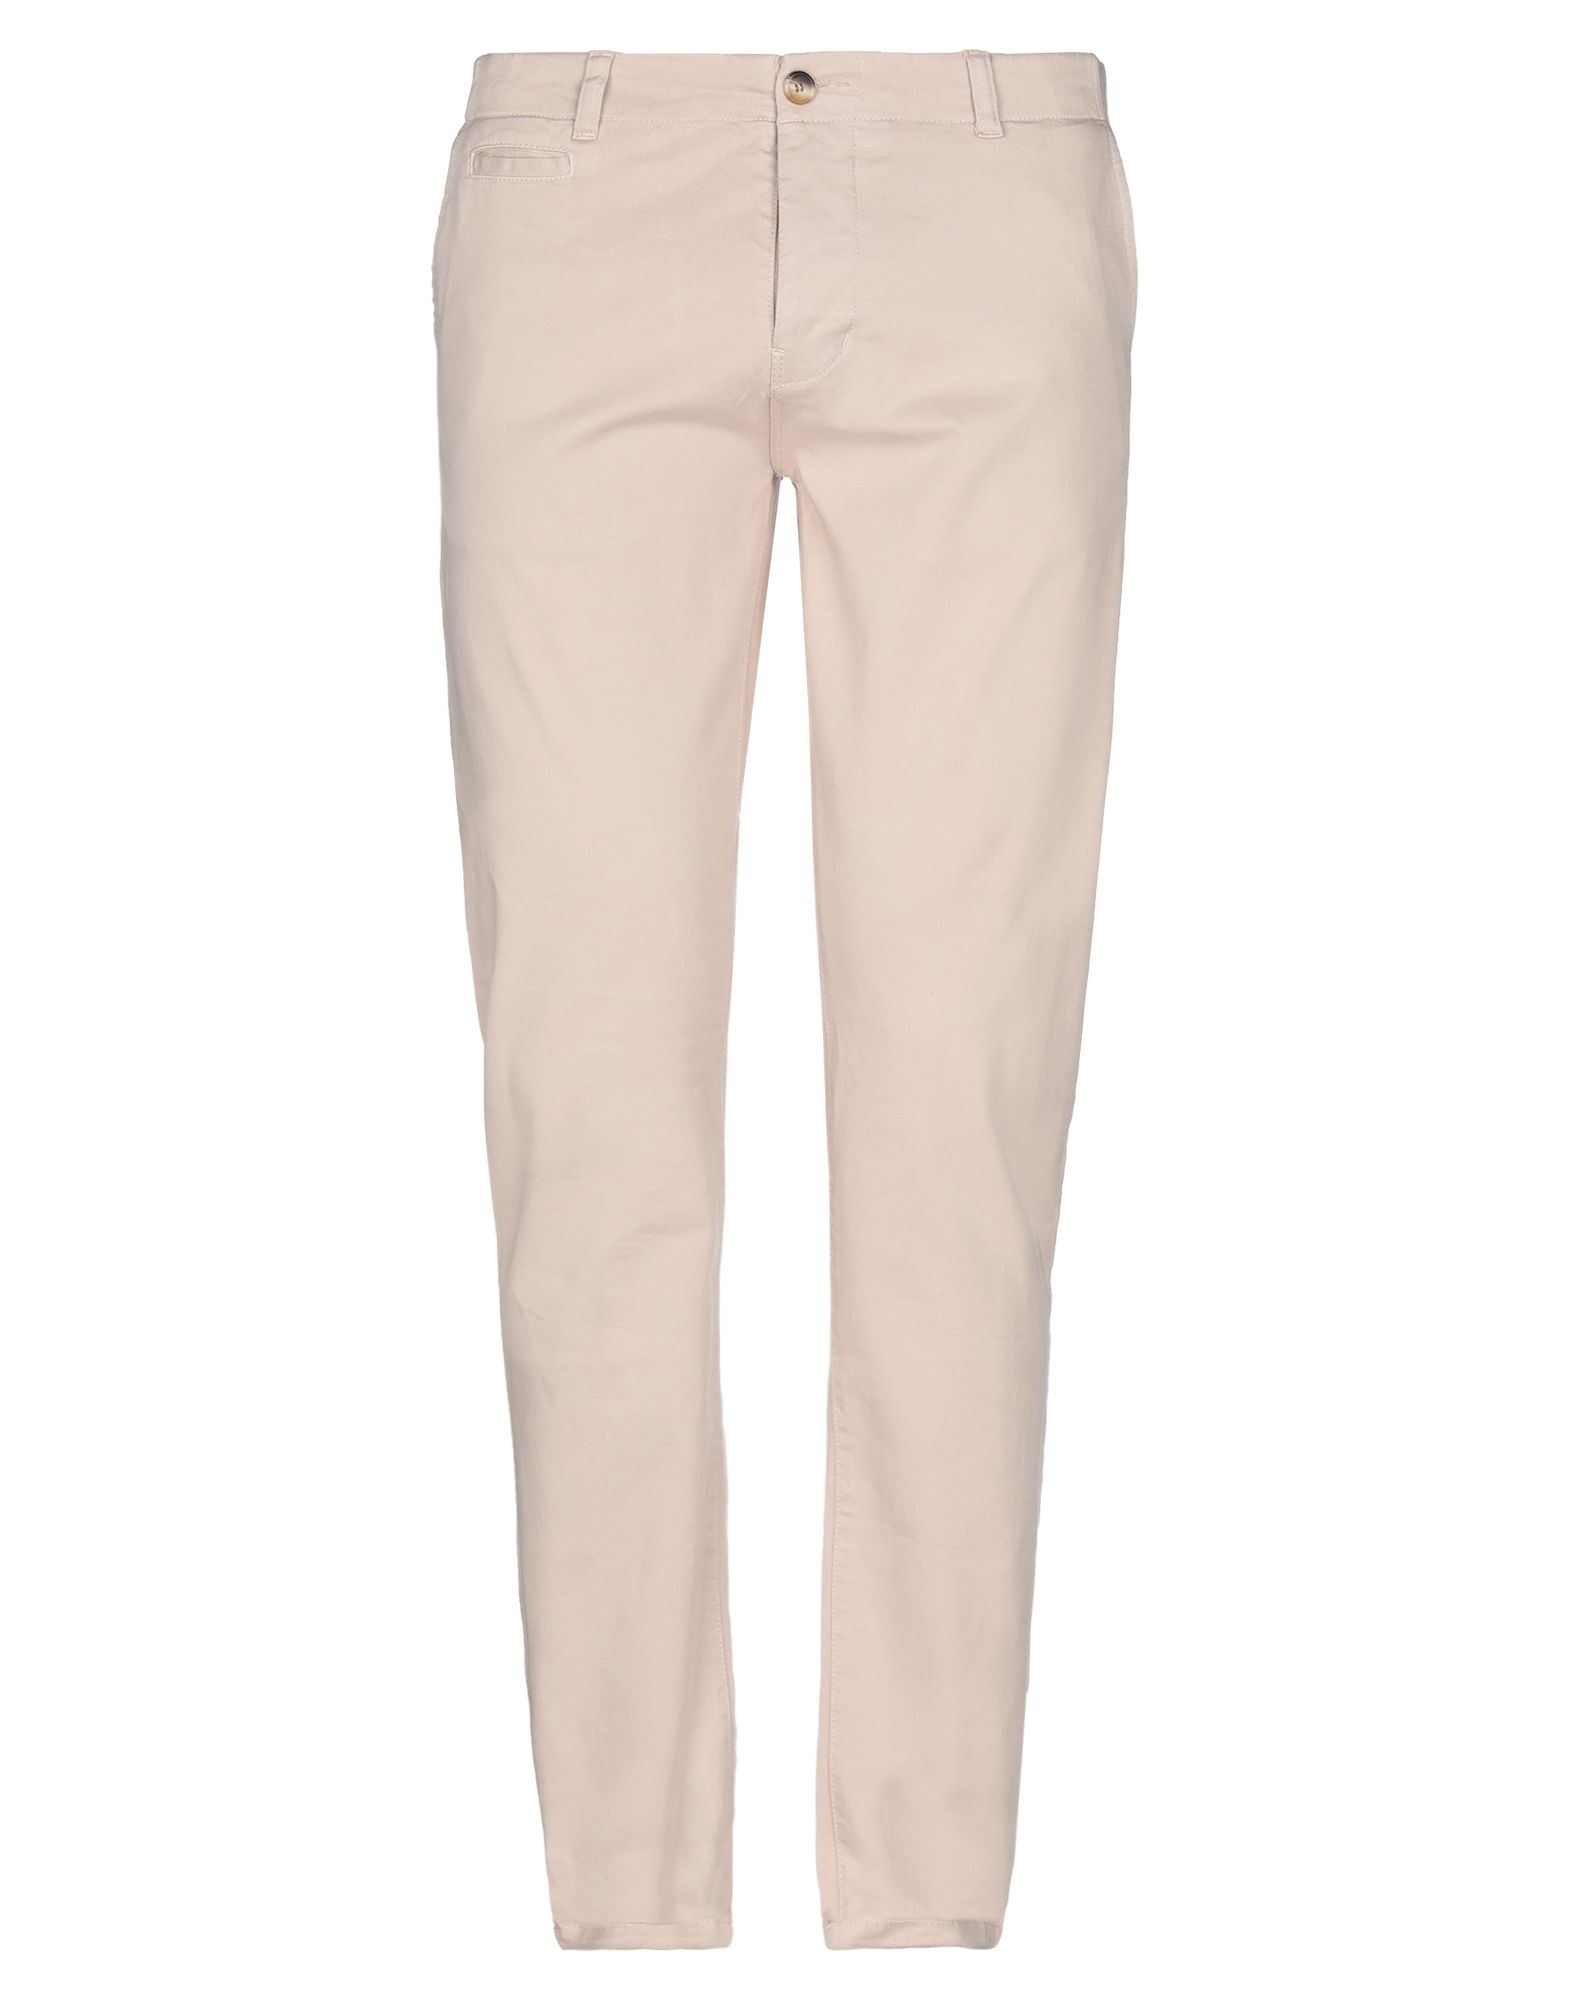 CUISSE DE GRENOUILLE Casual Pants in Beige